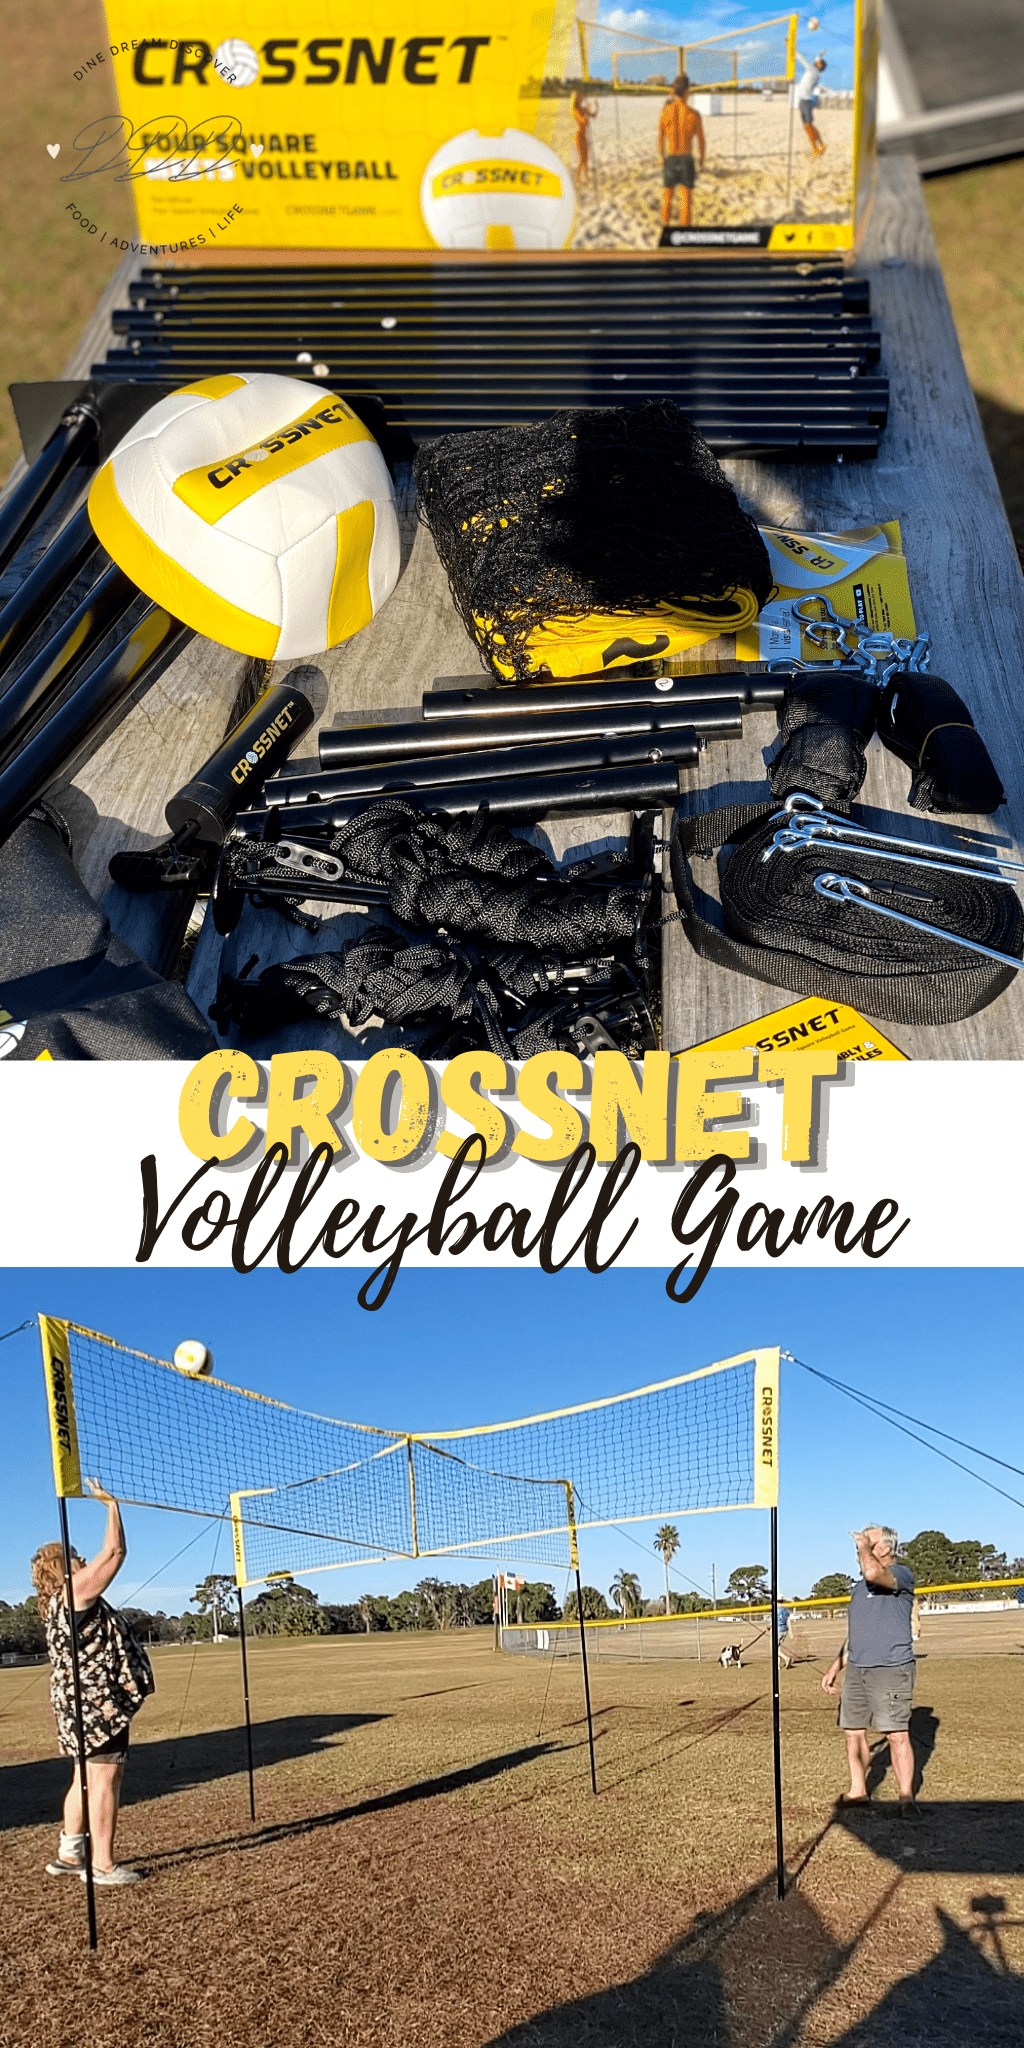 CROSSNET - The New Volleyball Game in Town